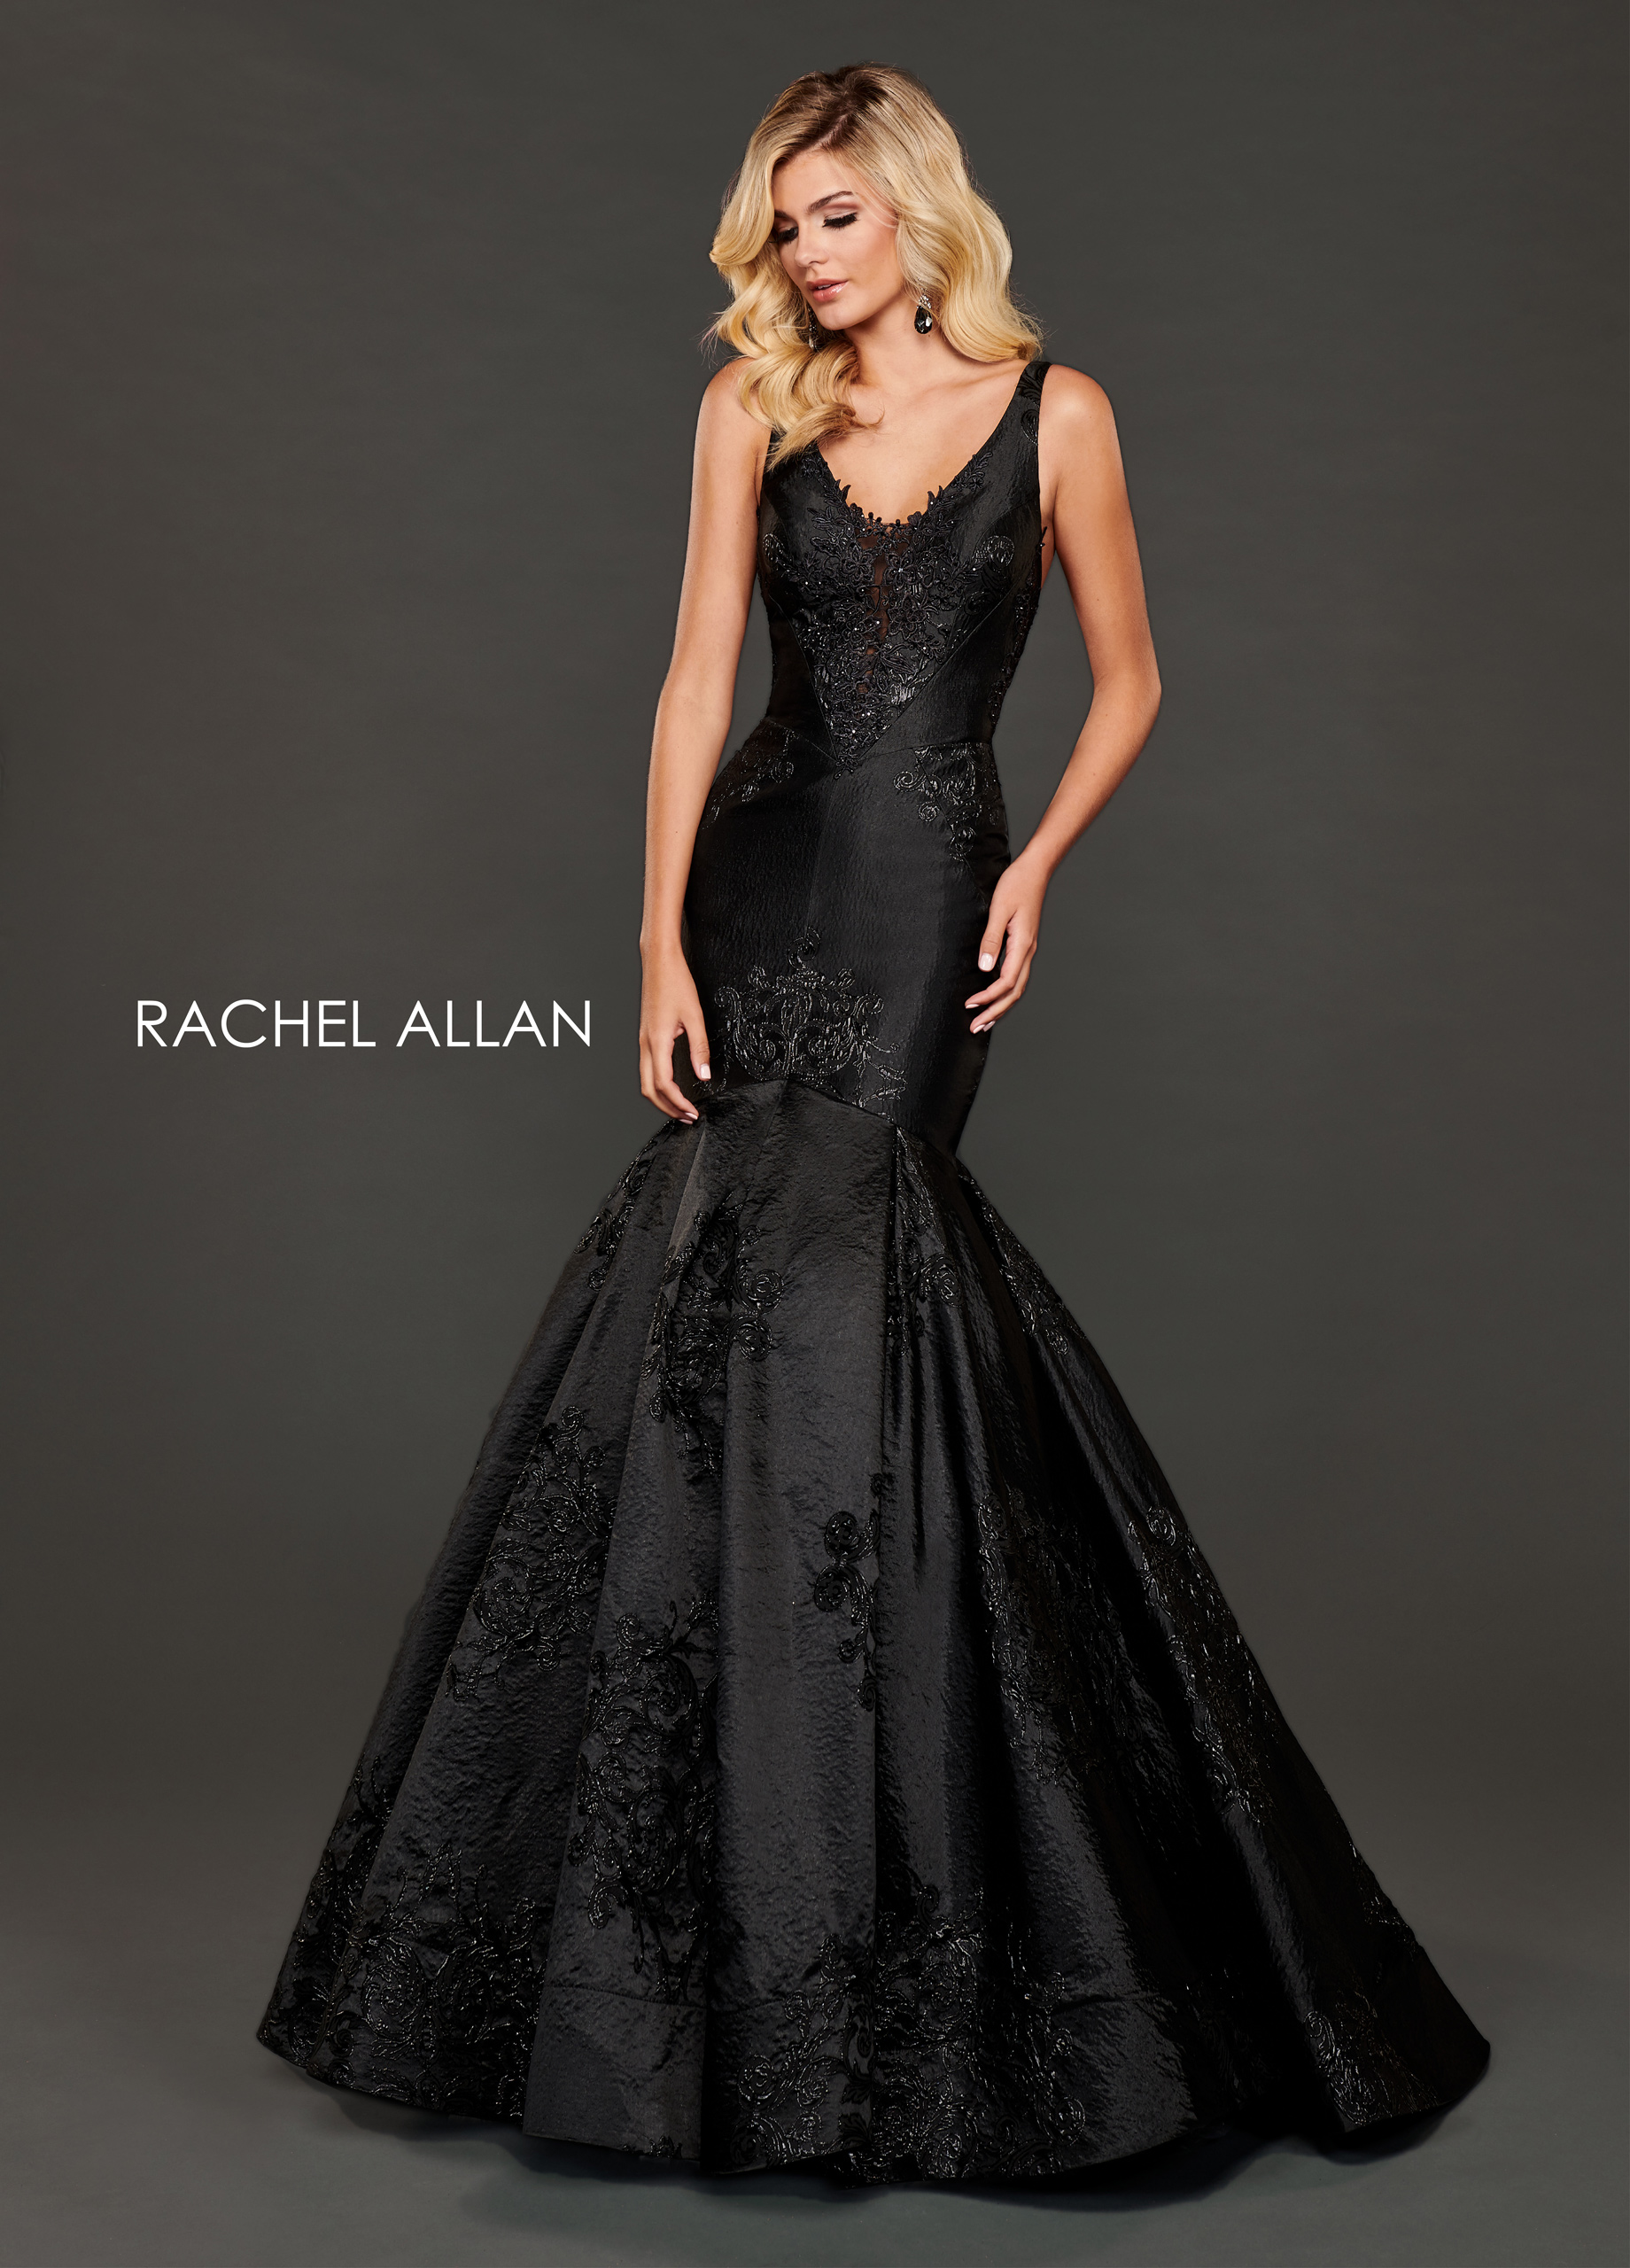 V-Neck Mermaid Couture Dresses in Black Color